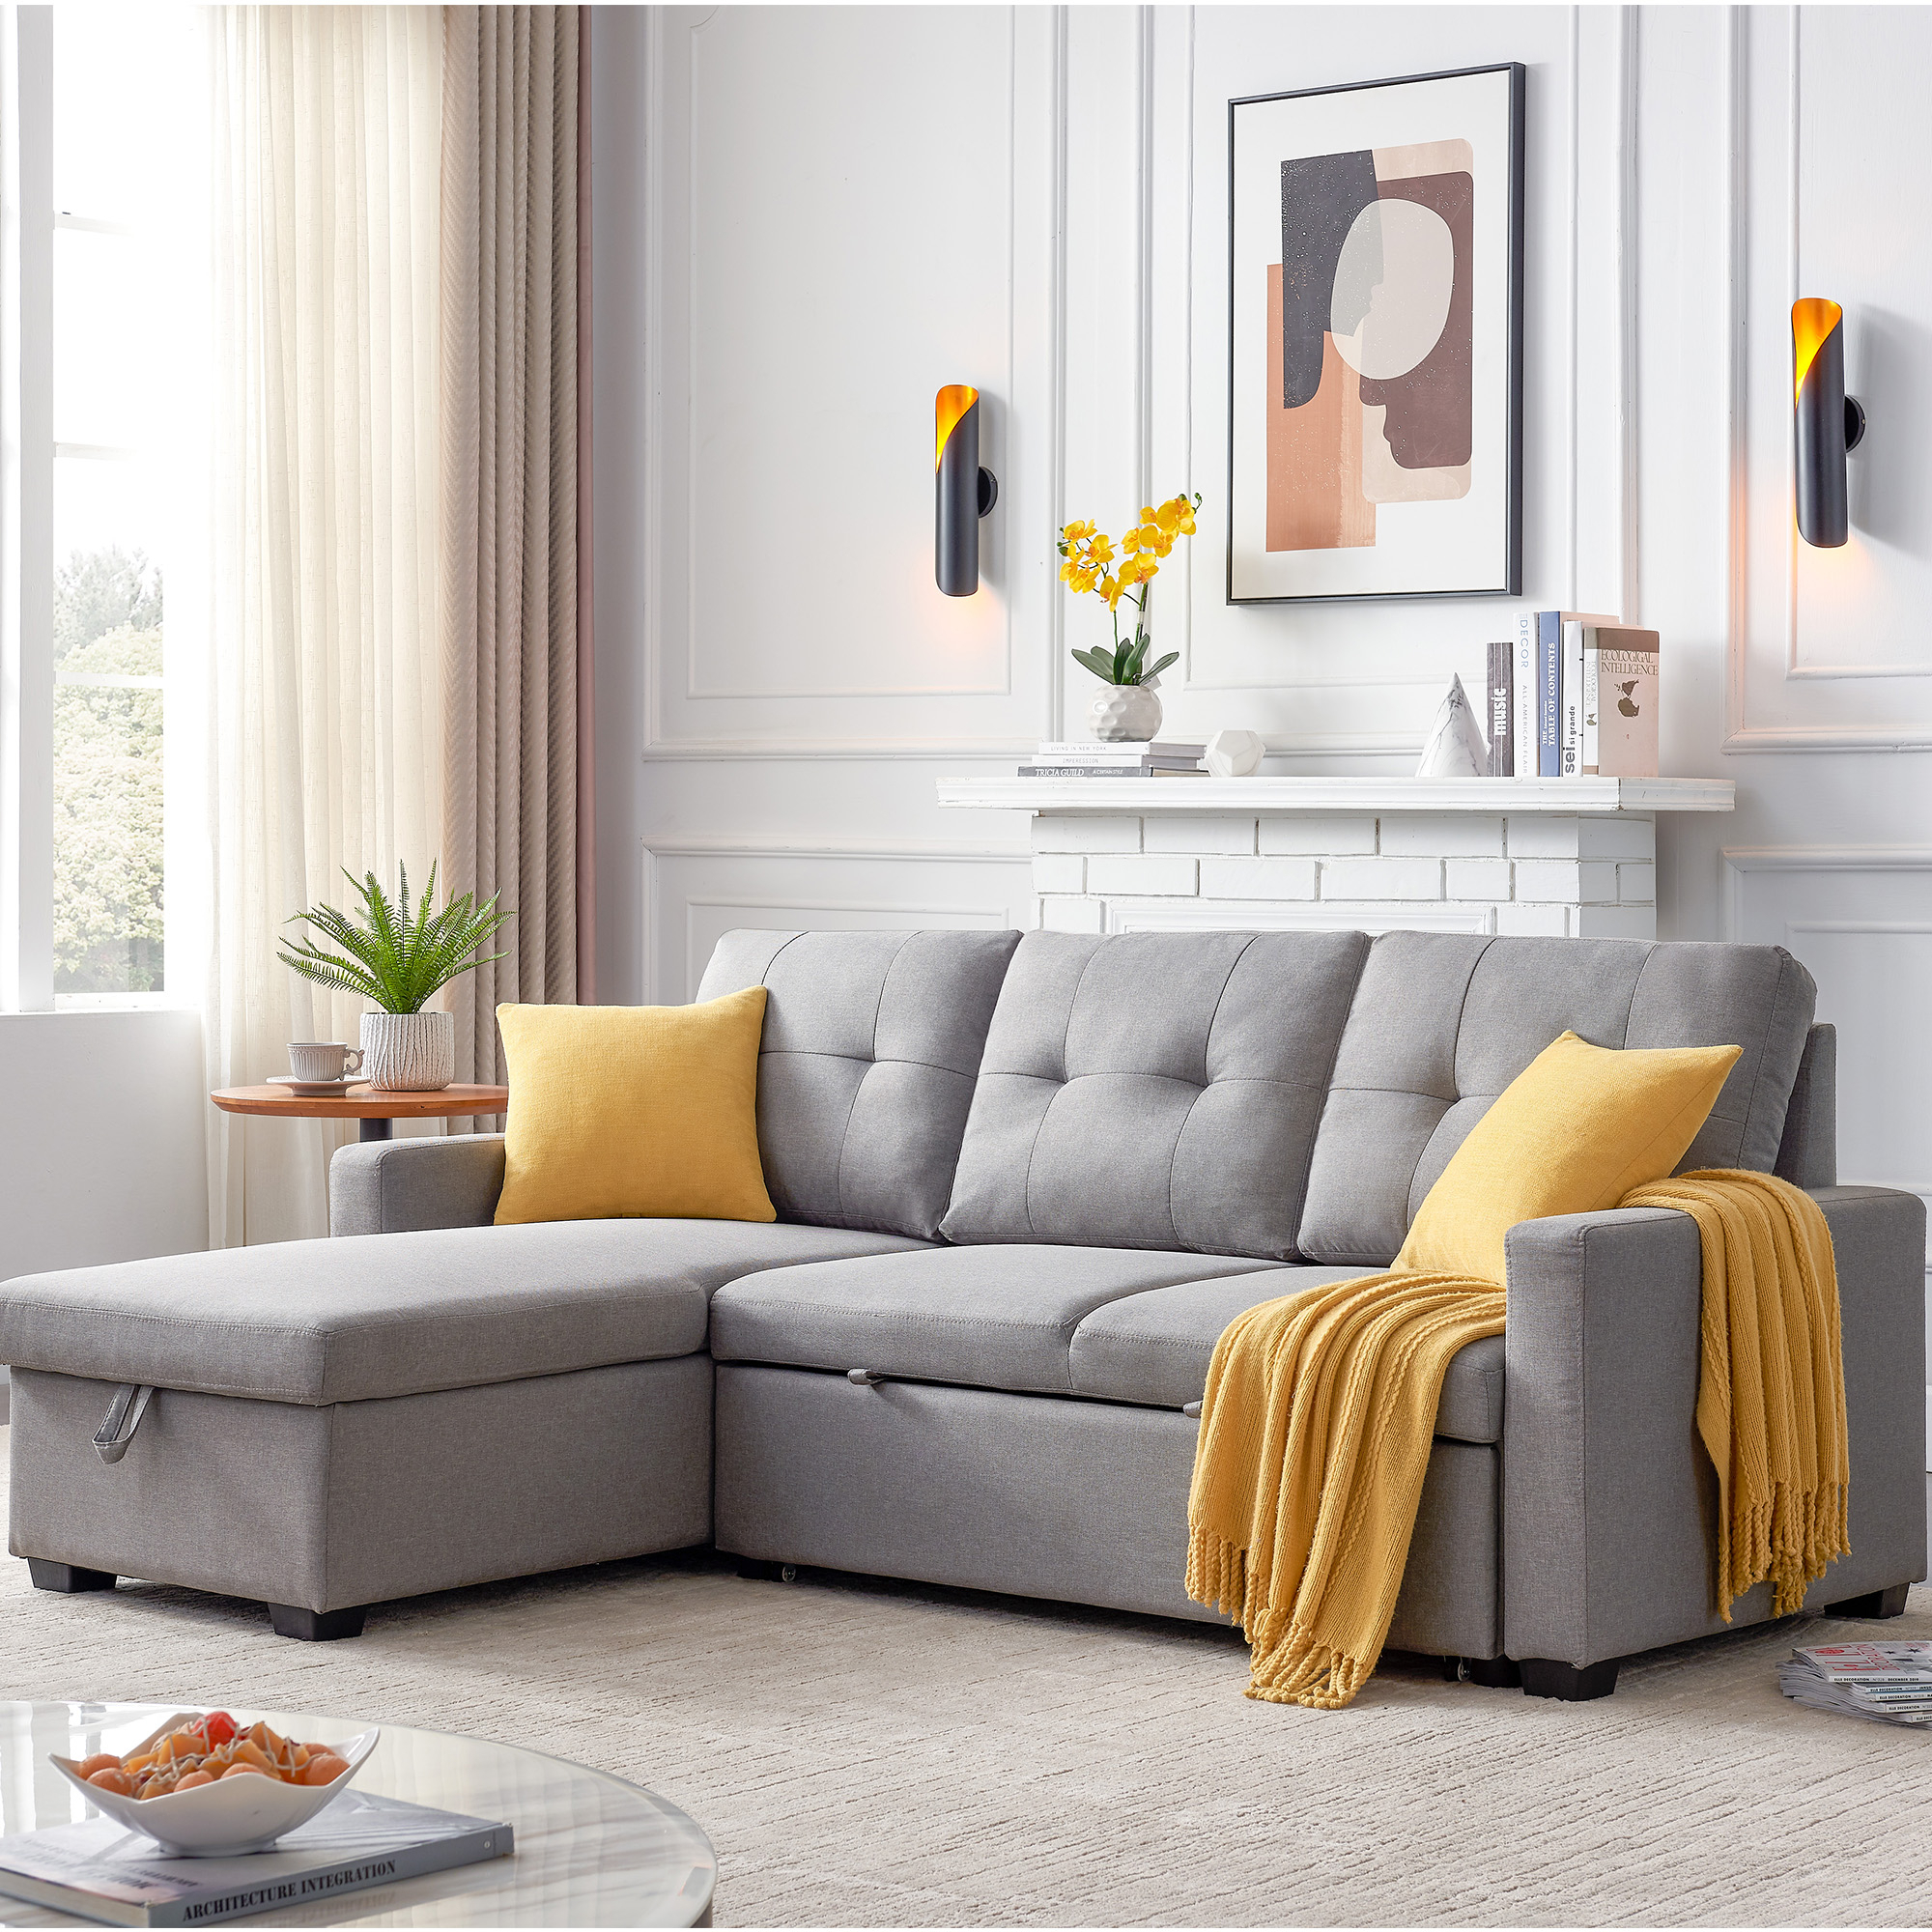 """Tufted 82"""" X 60"""" X 35"""" Modern Sofa Bed With Pull Out Regarding Easton Small Space Sectional Futon Sofas (View 1 of 15)"""